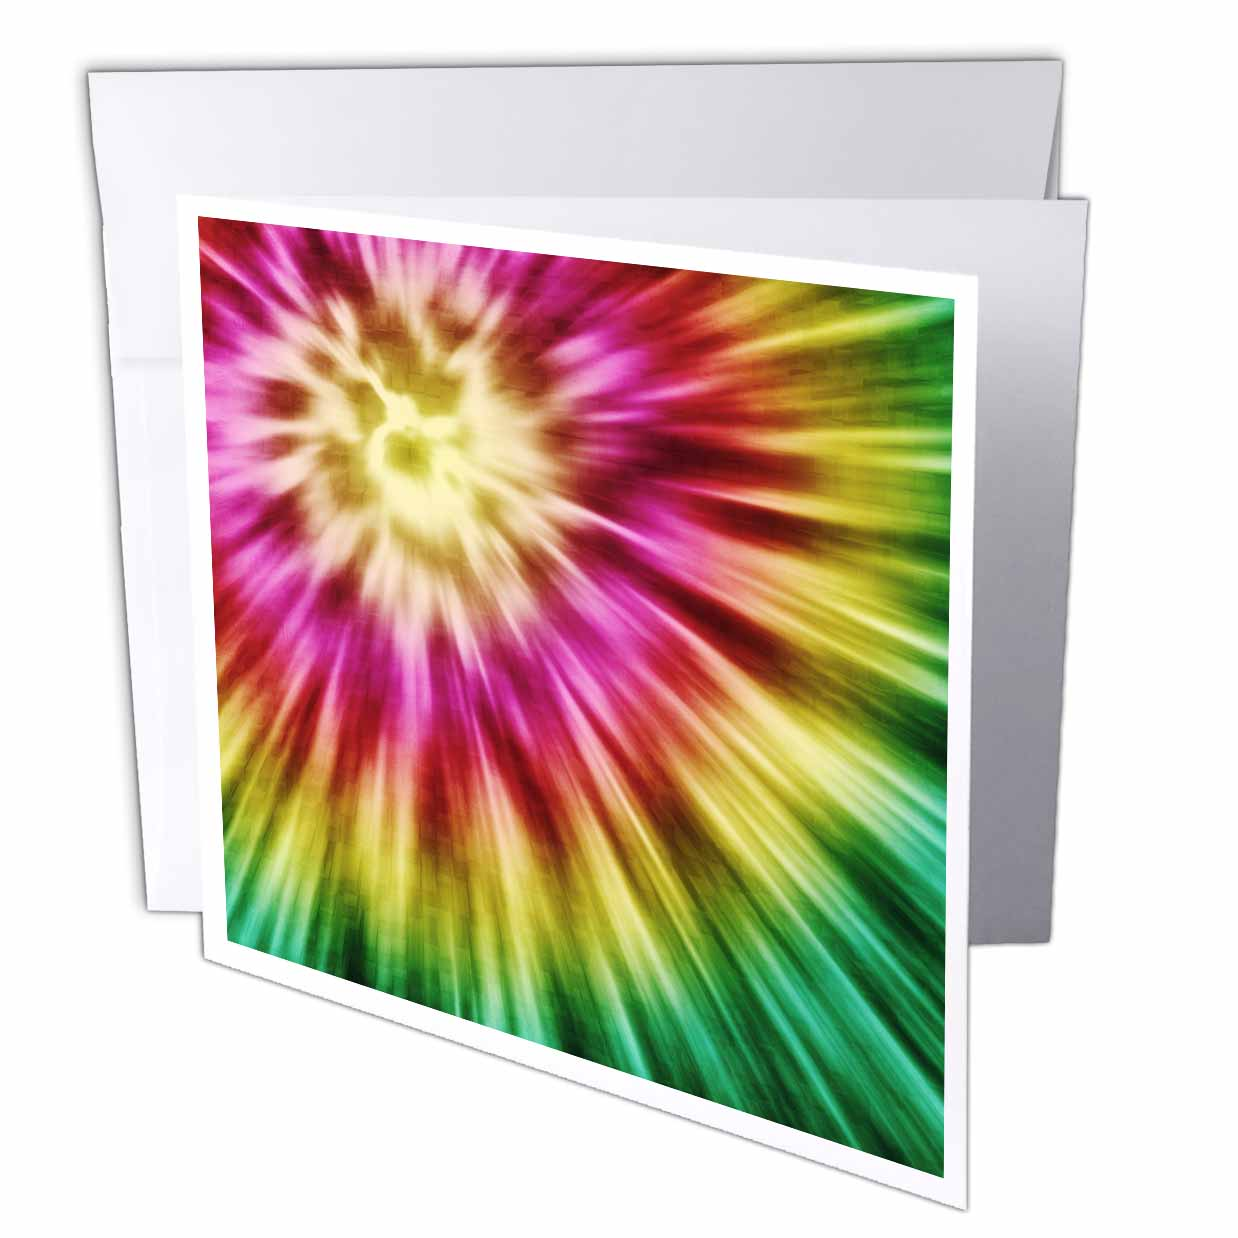 3dRose Tie Dye Green starburst tie dye design in green yellow and red, Greeting Cards, 6 x 6 inches, set of 12